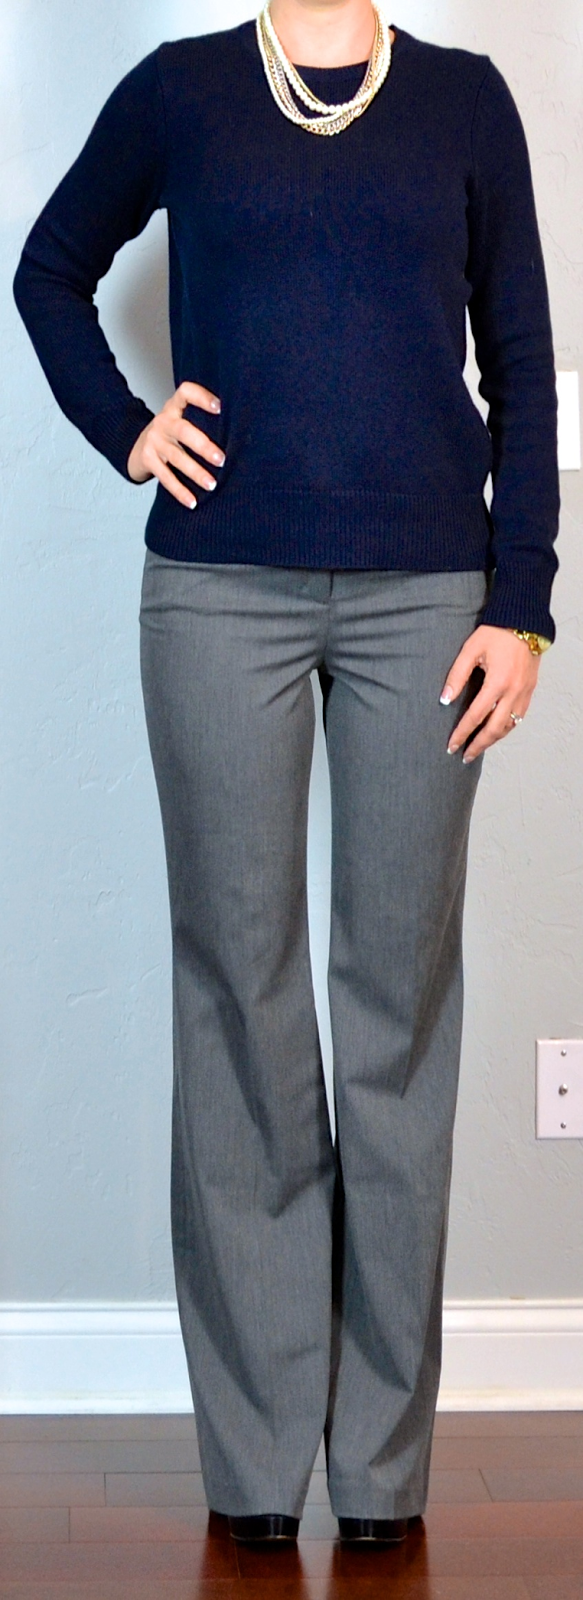 Original What To Wear With Grey Pants At Work